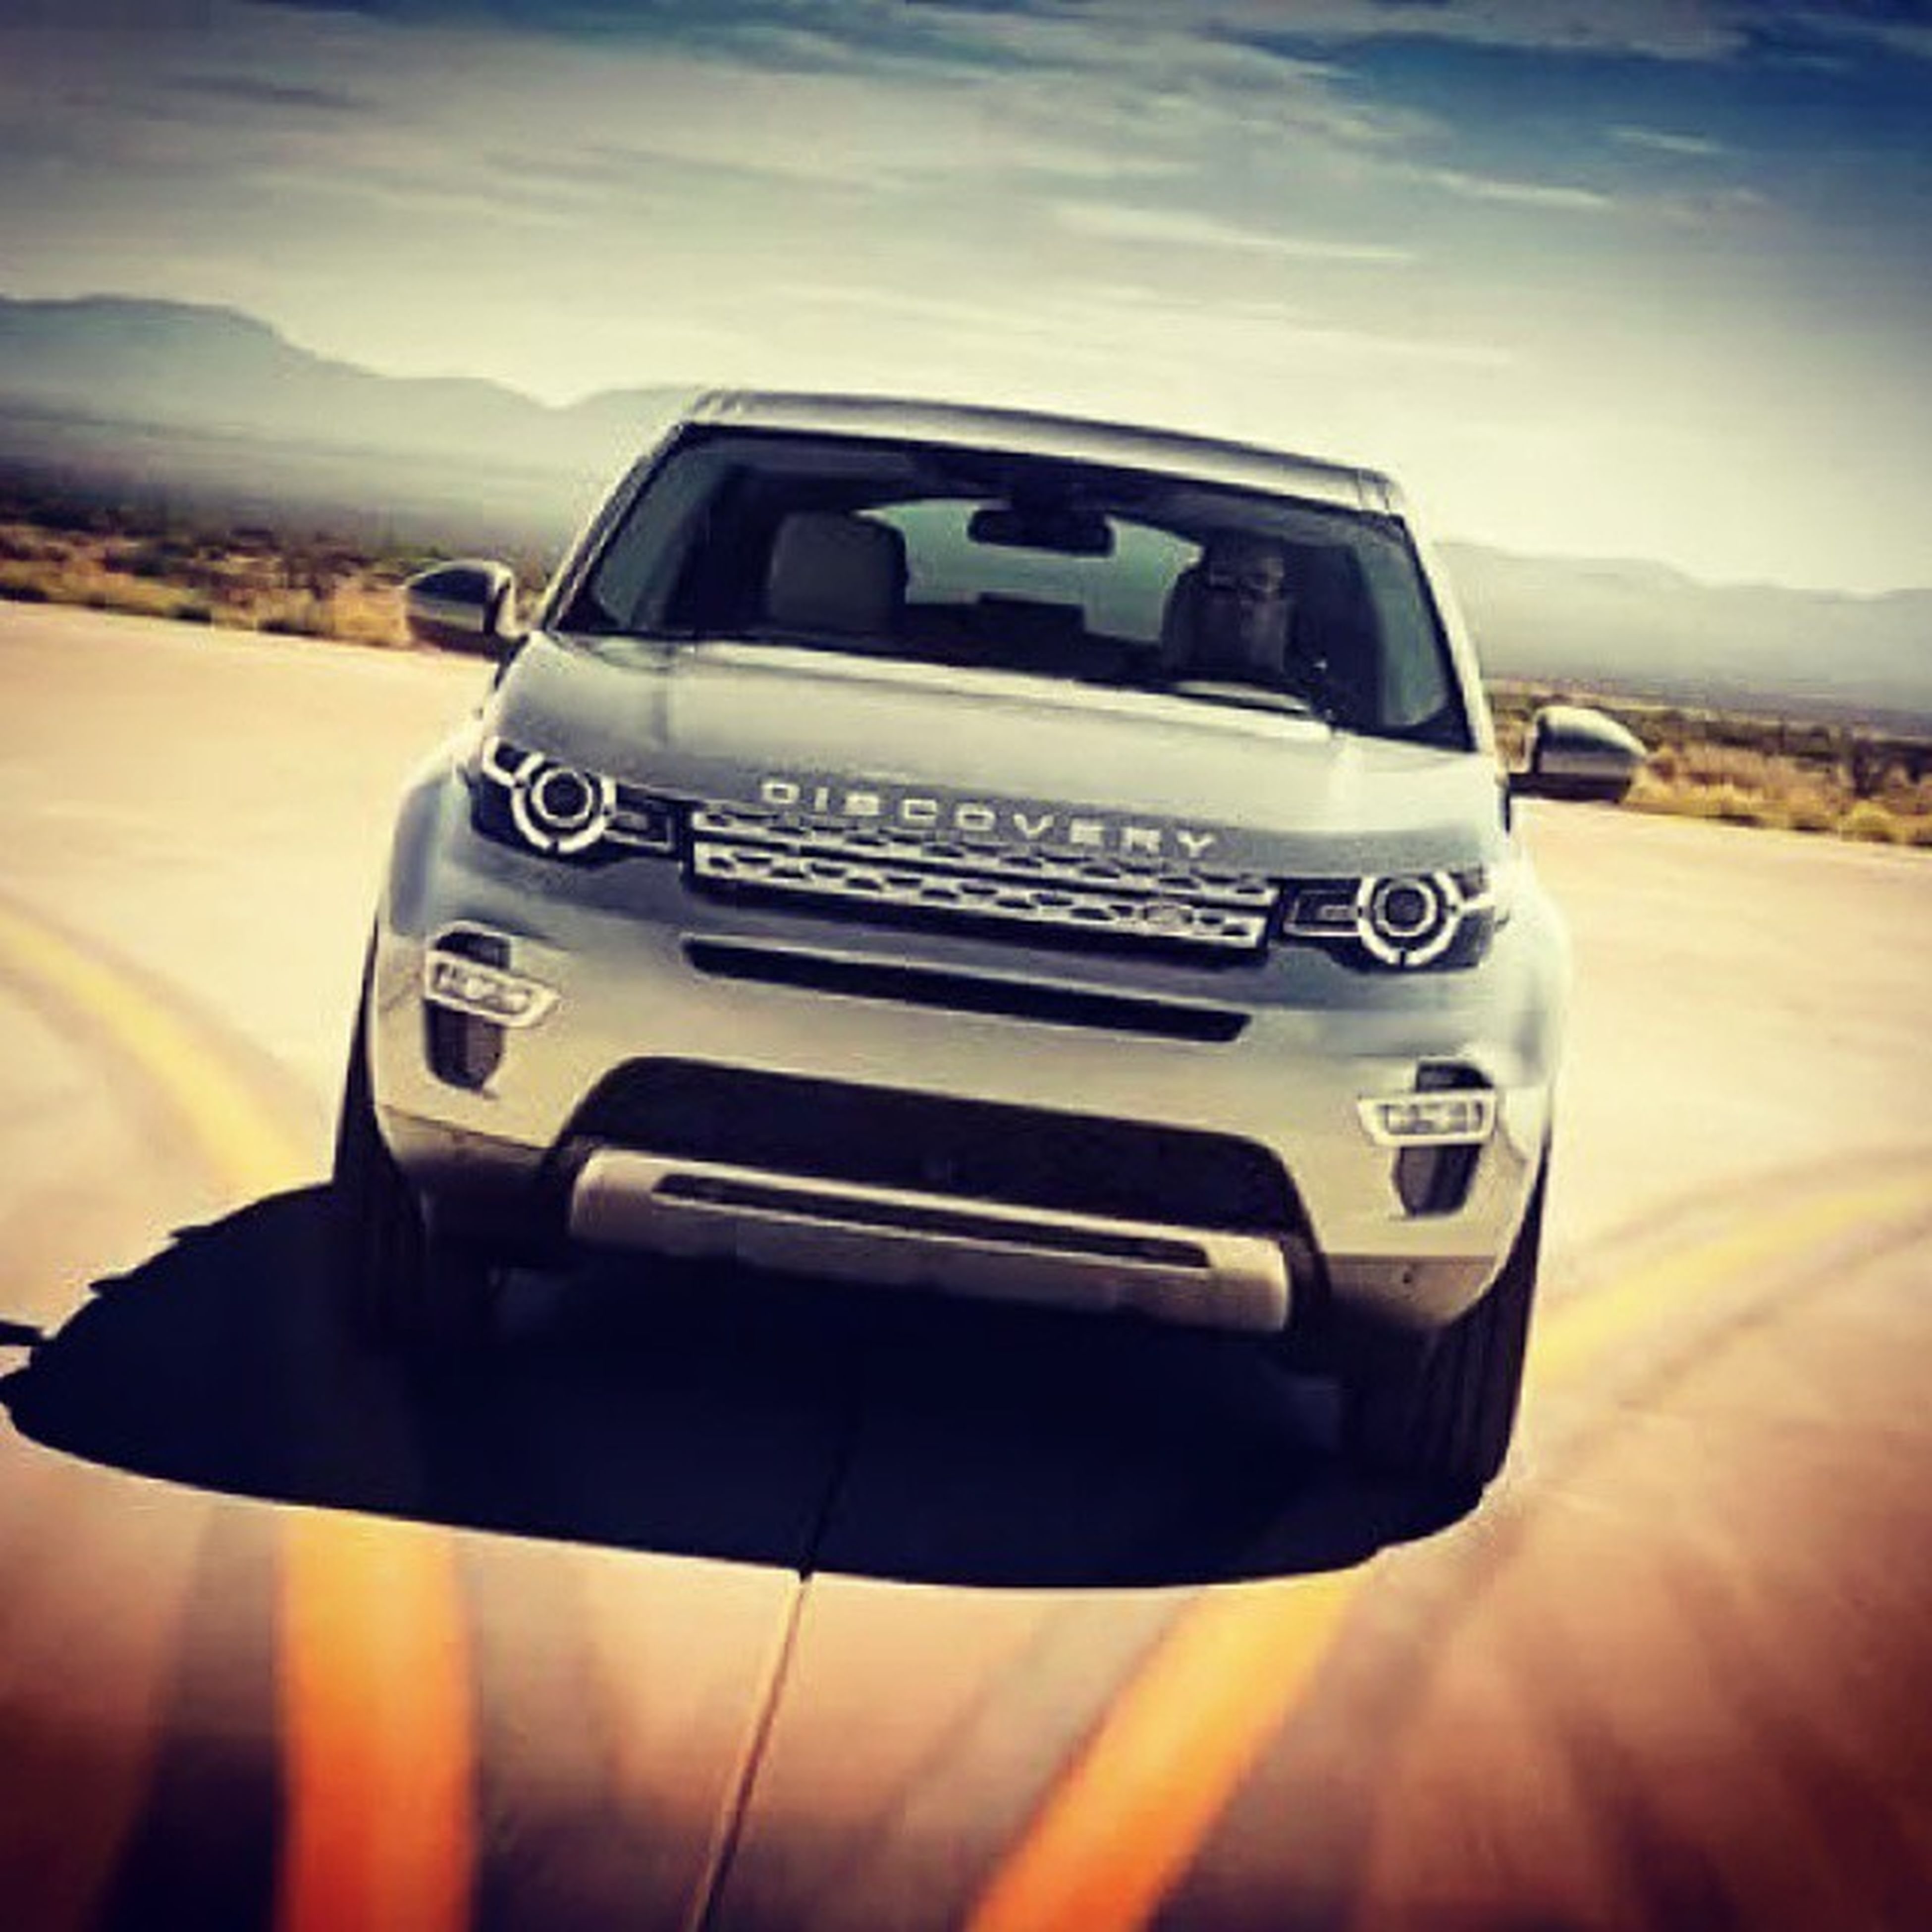 My Dream car Roover cool awesome silver inlovewid